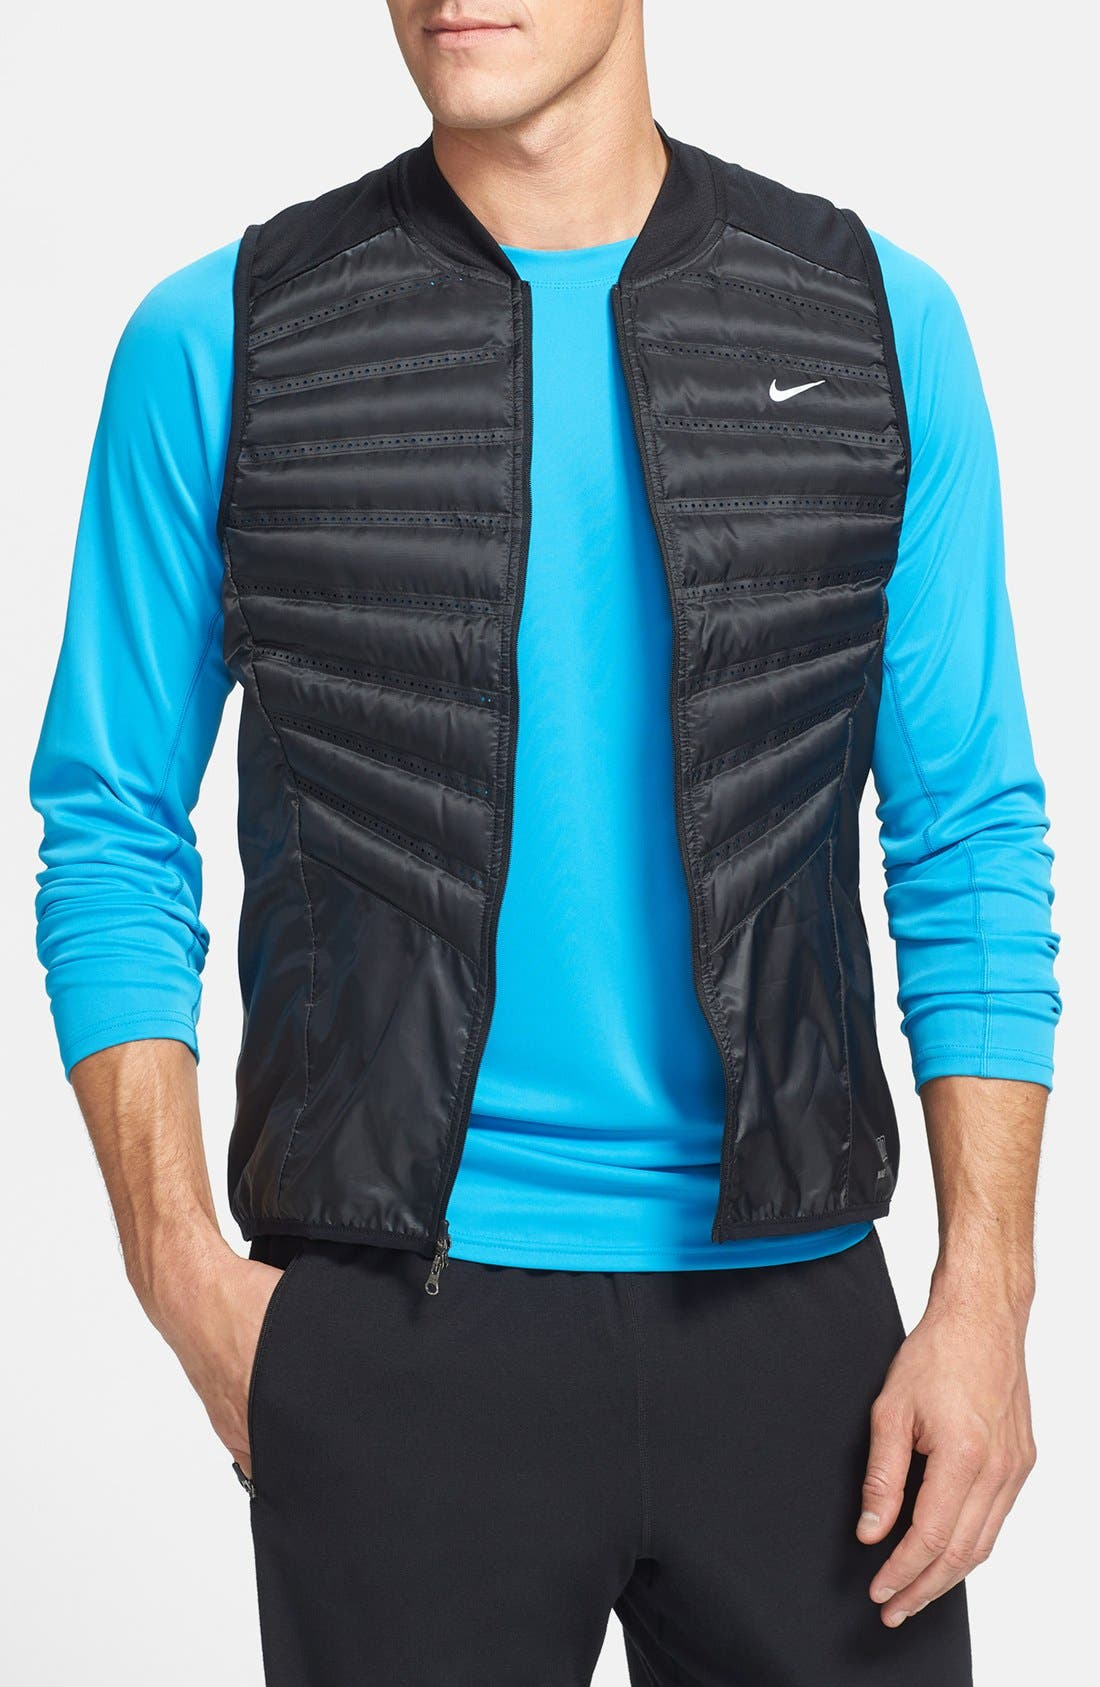 Main Image - Nike 'Aeroloft' Insulated Running Vest